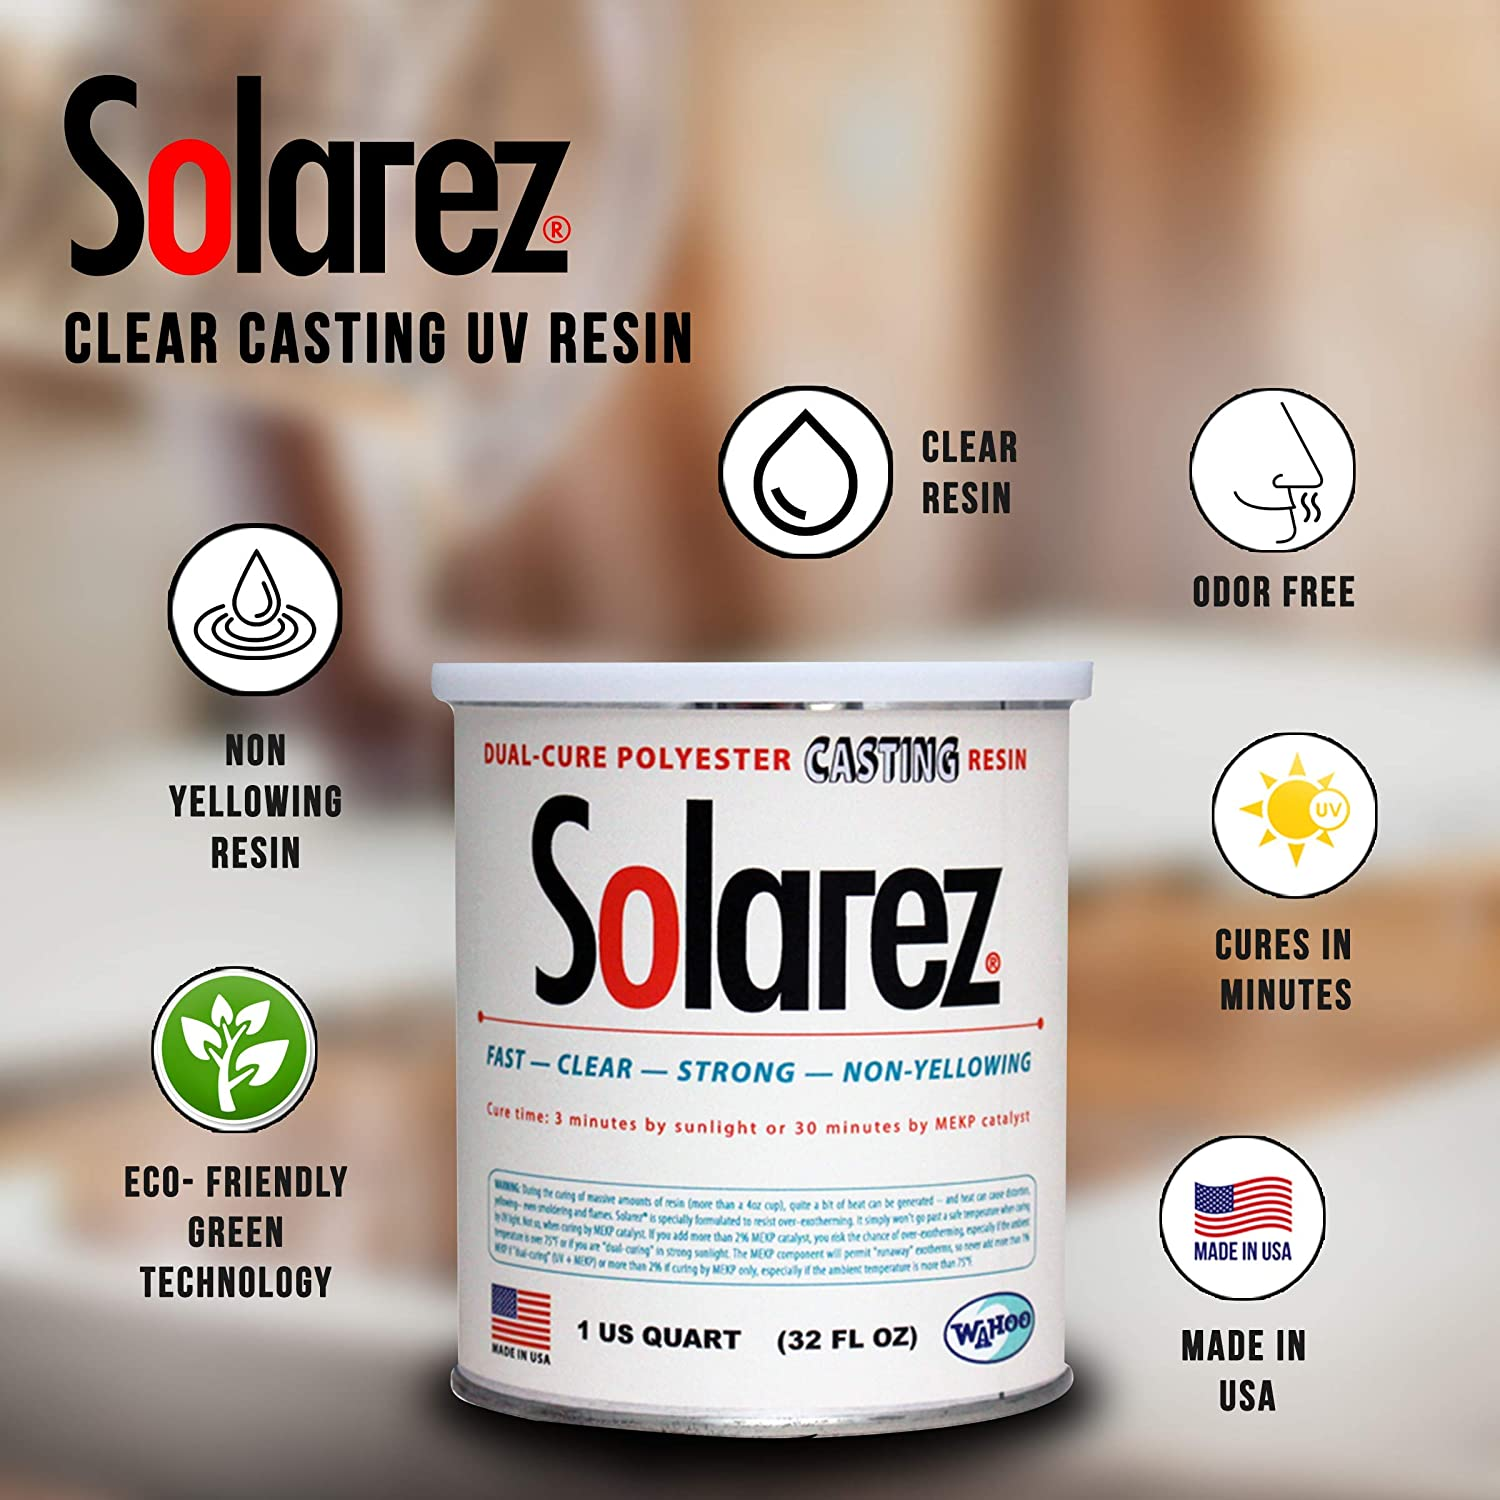 SOLAREZ UV Cure Clear Casting Resin ~ for DIY Jewelry, Hobby, Craft  Decoration Making - Crystal Clear Solar Cure Molding and Casting Resin